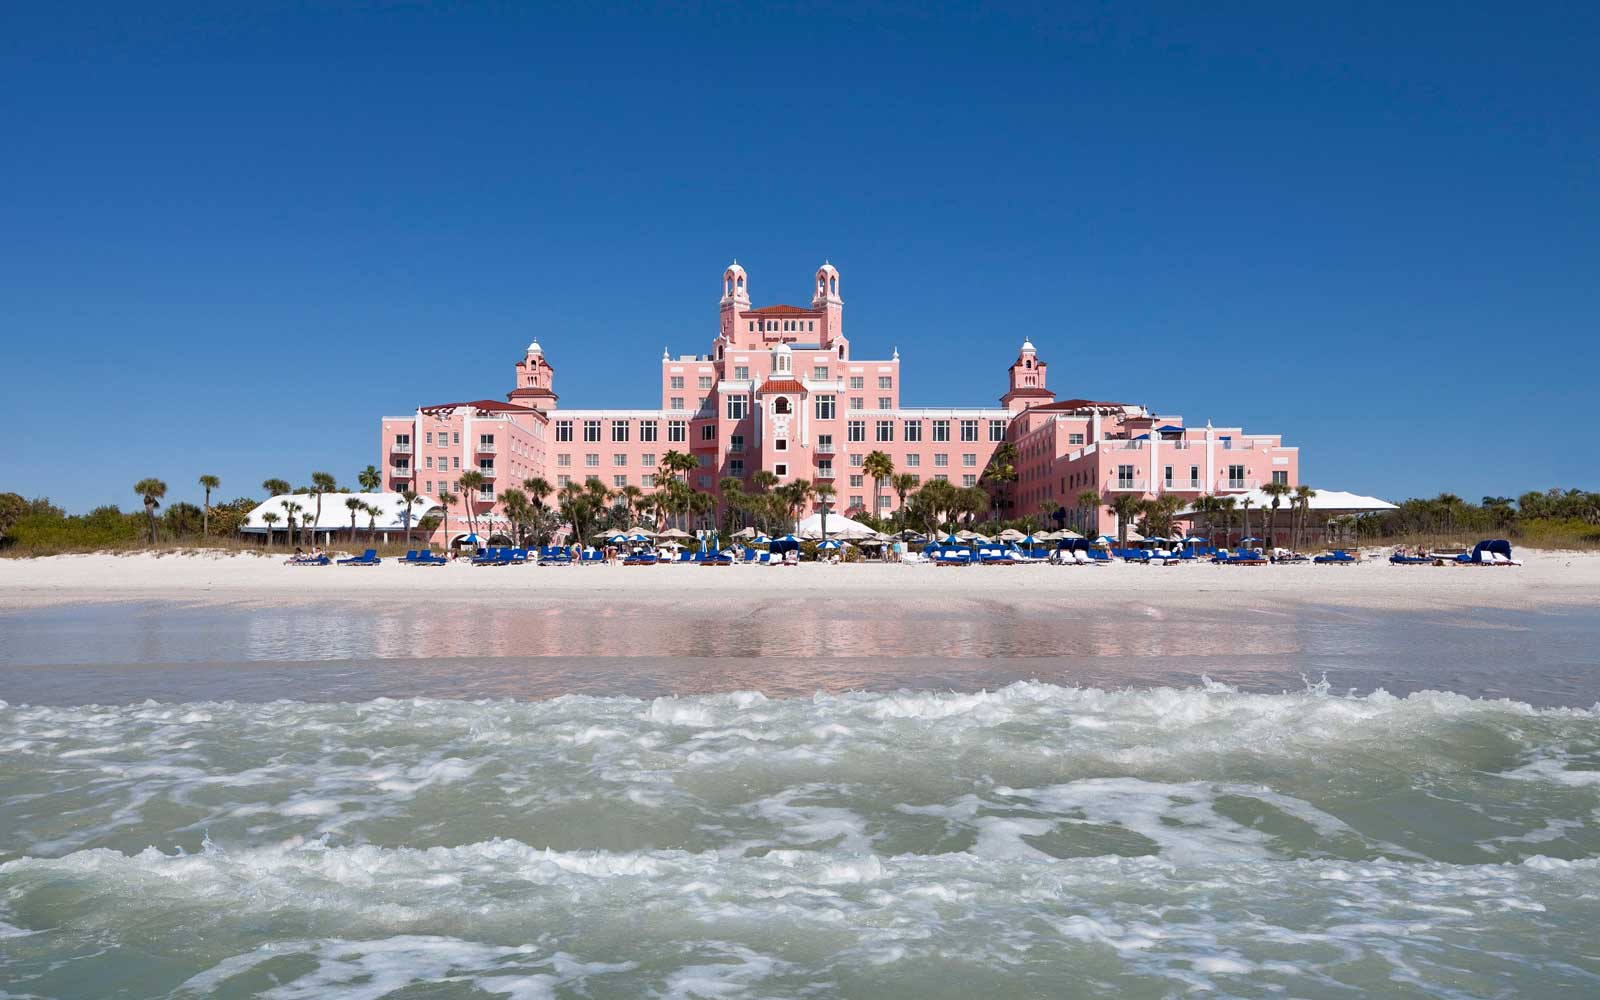 Stay at The Iconic Don CeSar Hotel in St. Pete Beach for Only $246 Per Night